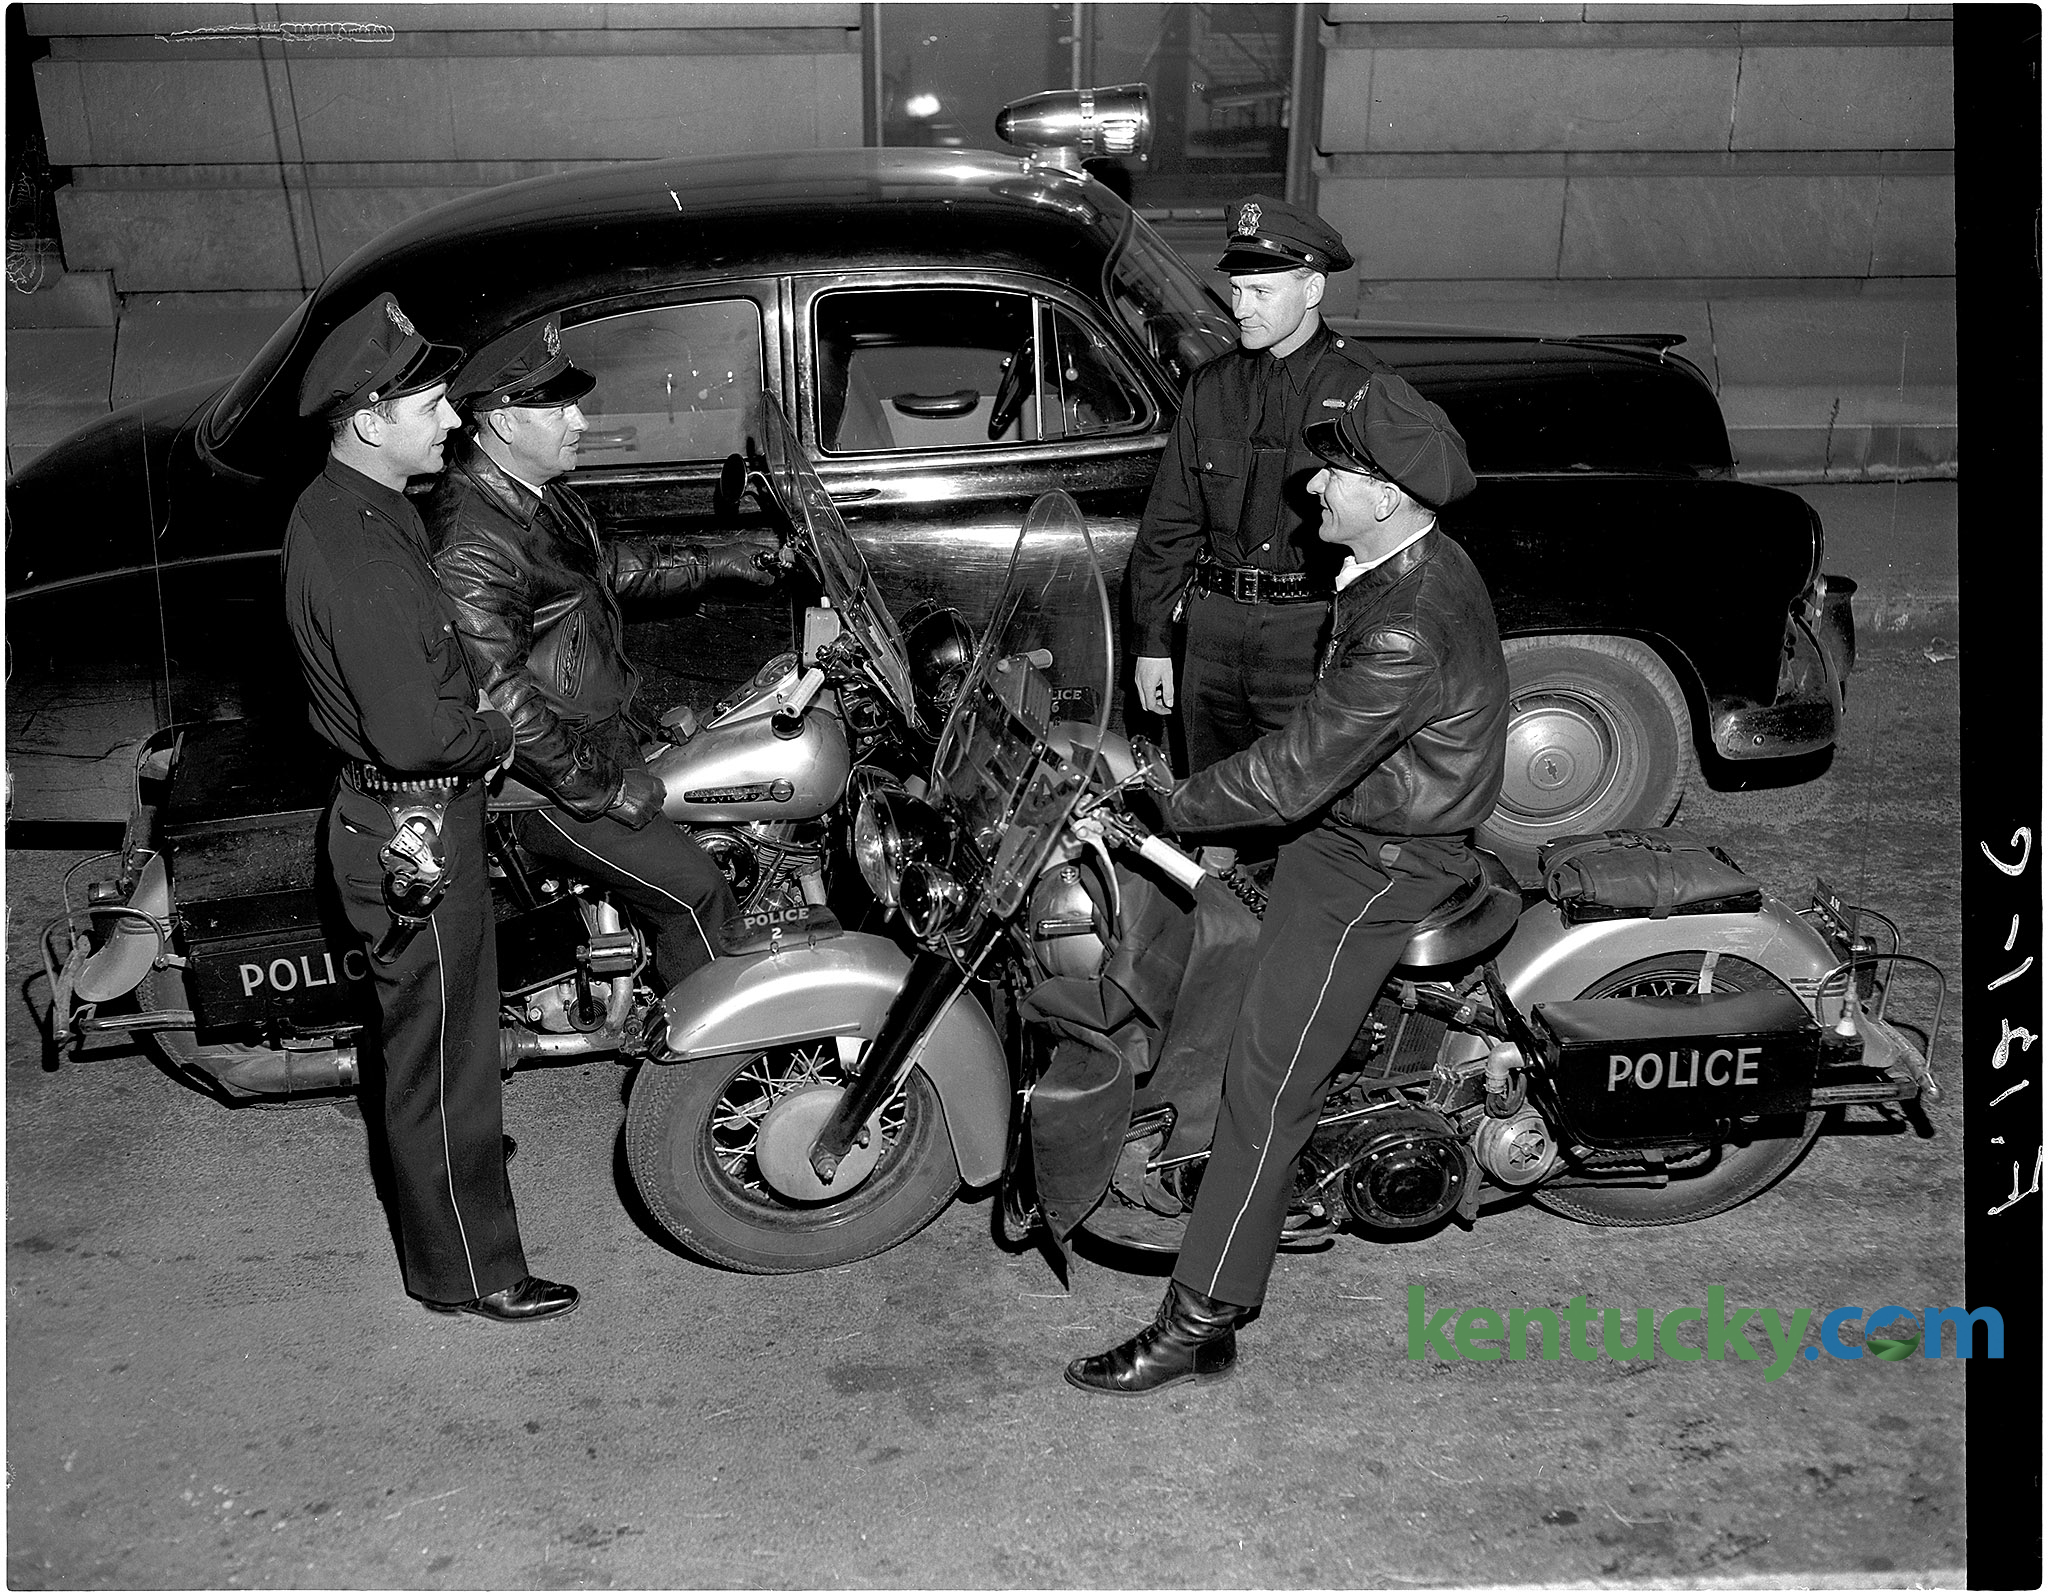 Lexington police officers, 1951 | Kentucky Photo Archive